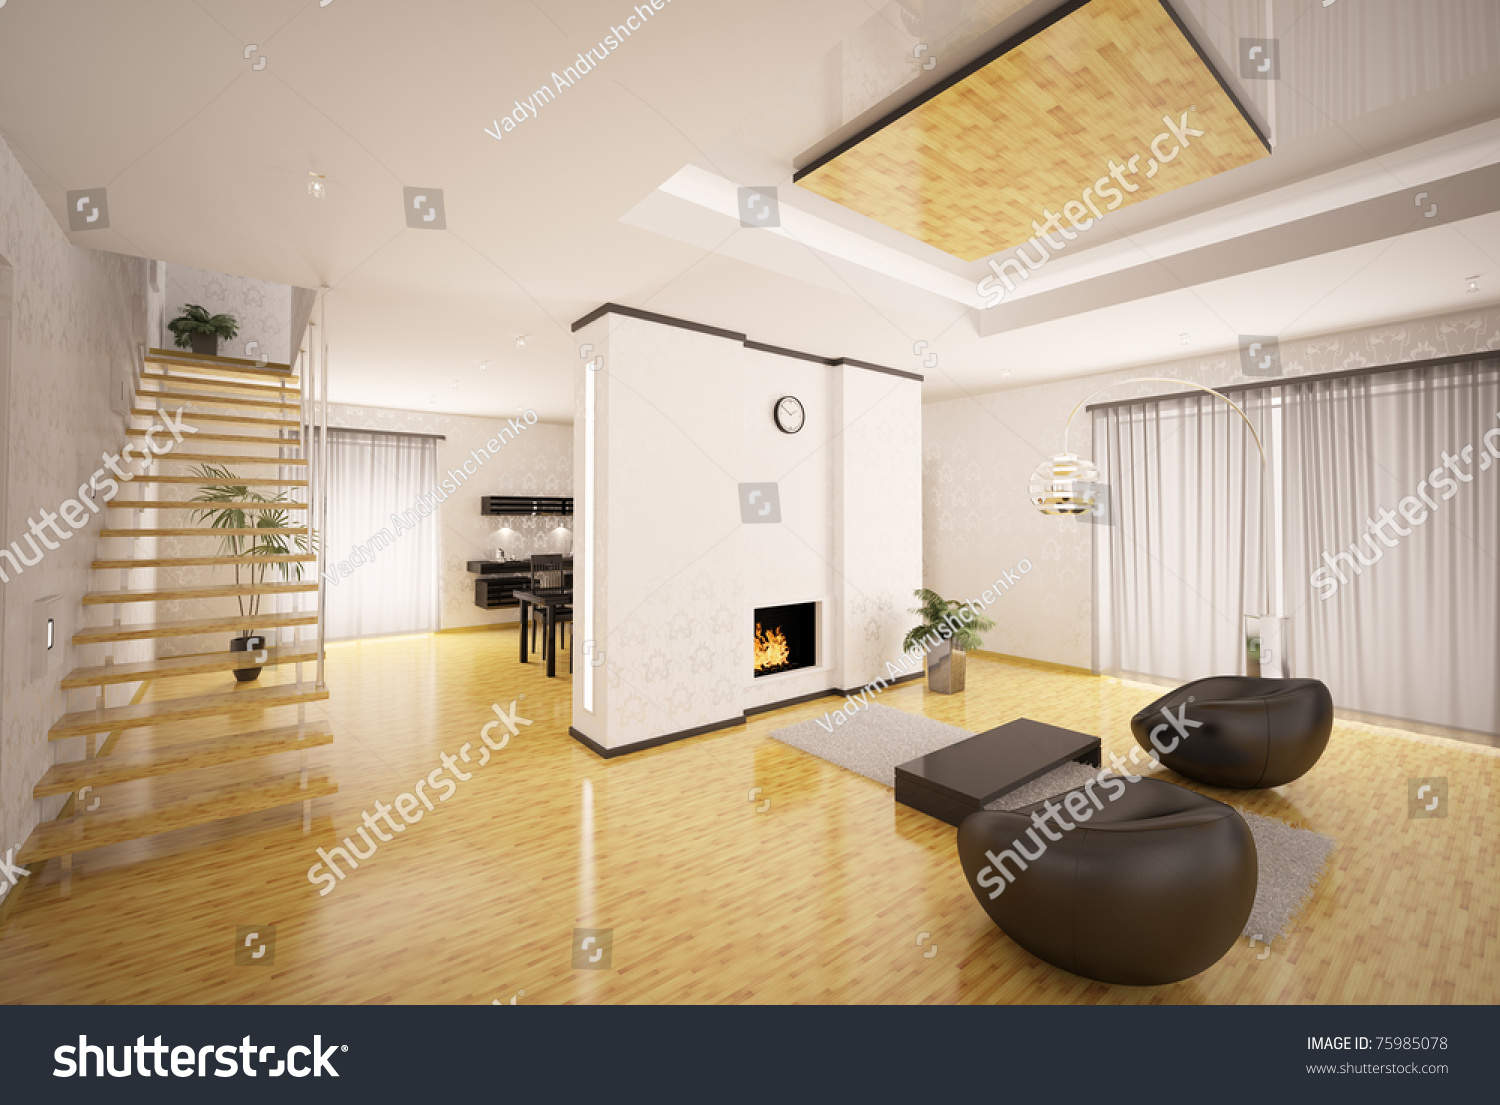 Apartment living room and kitchen - Interior Design Of Modern Apartment Living Room Kitchen 3d Render